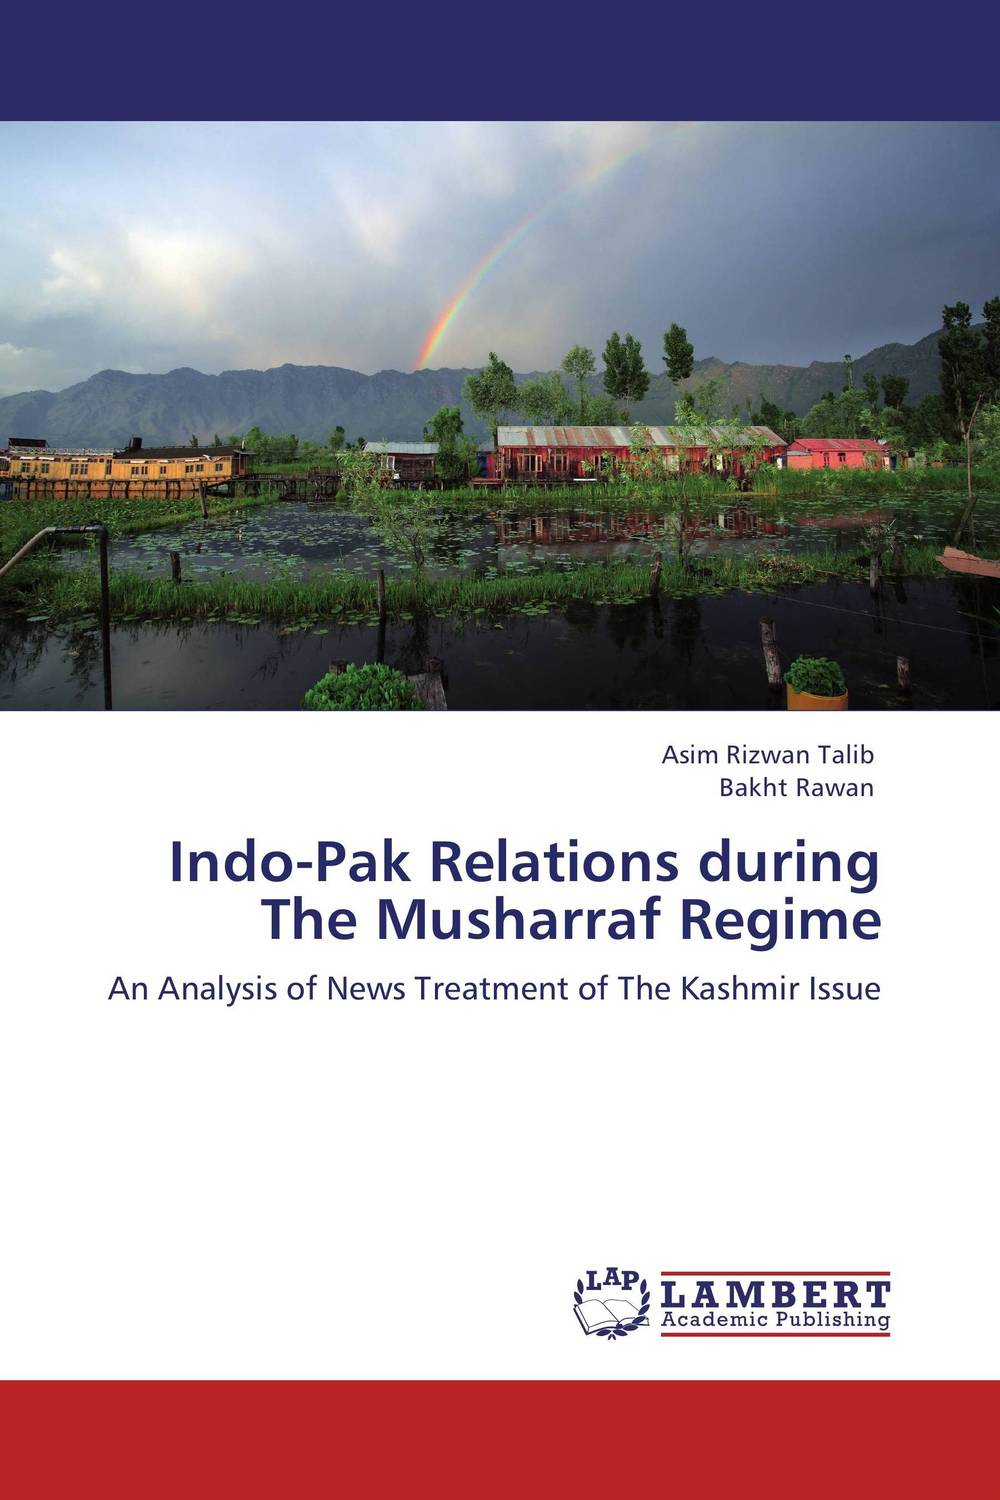 Indo-Pak Relations during The Musharraf Regime china india relations and implications for pakistan